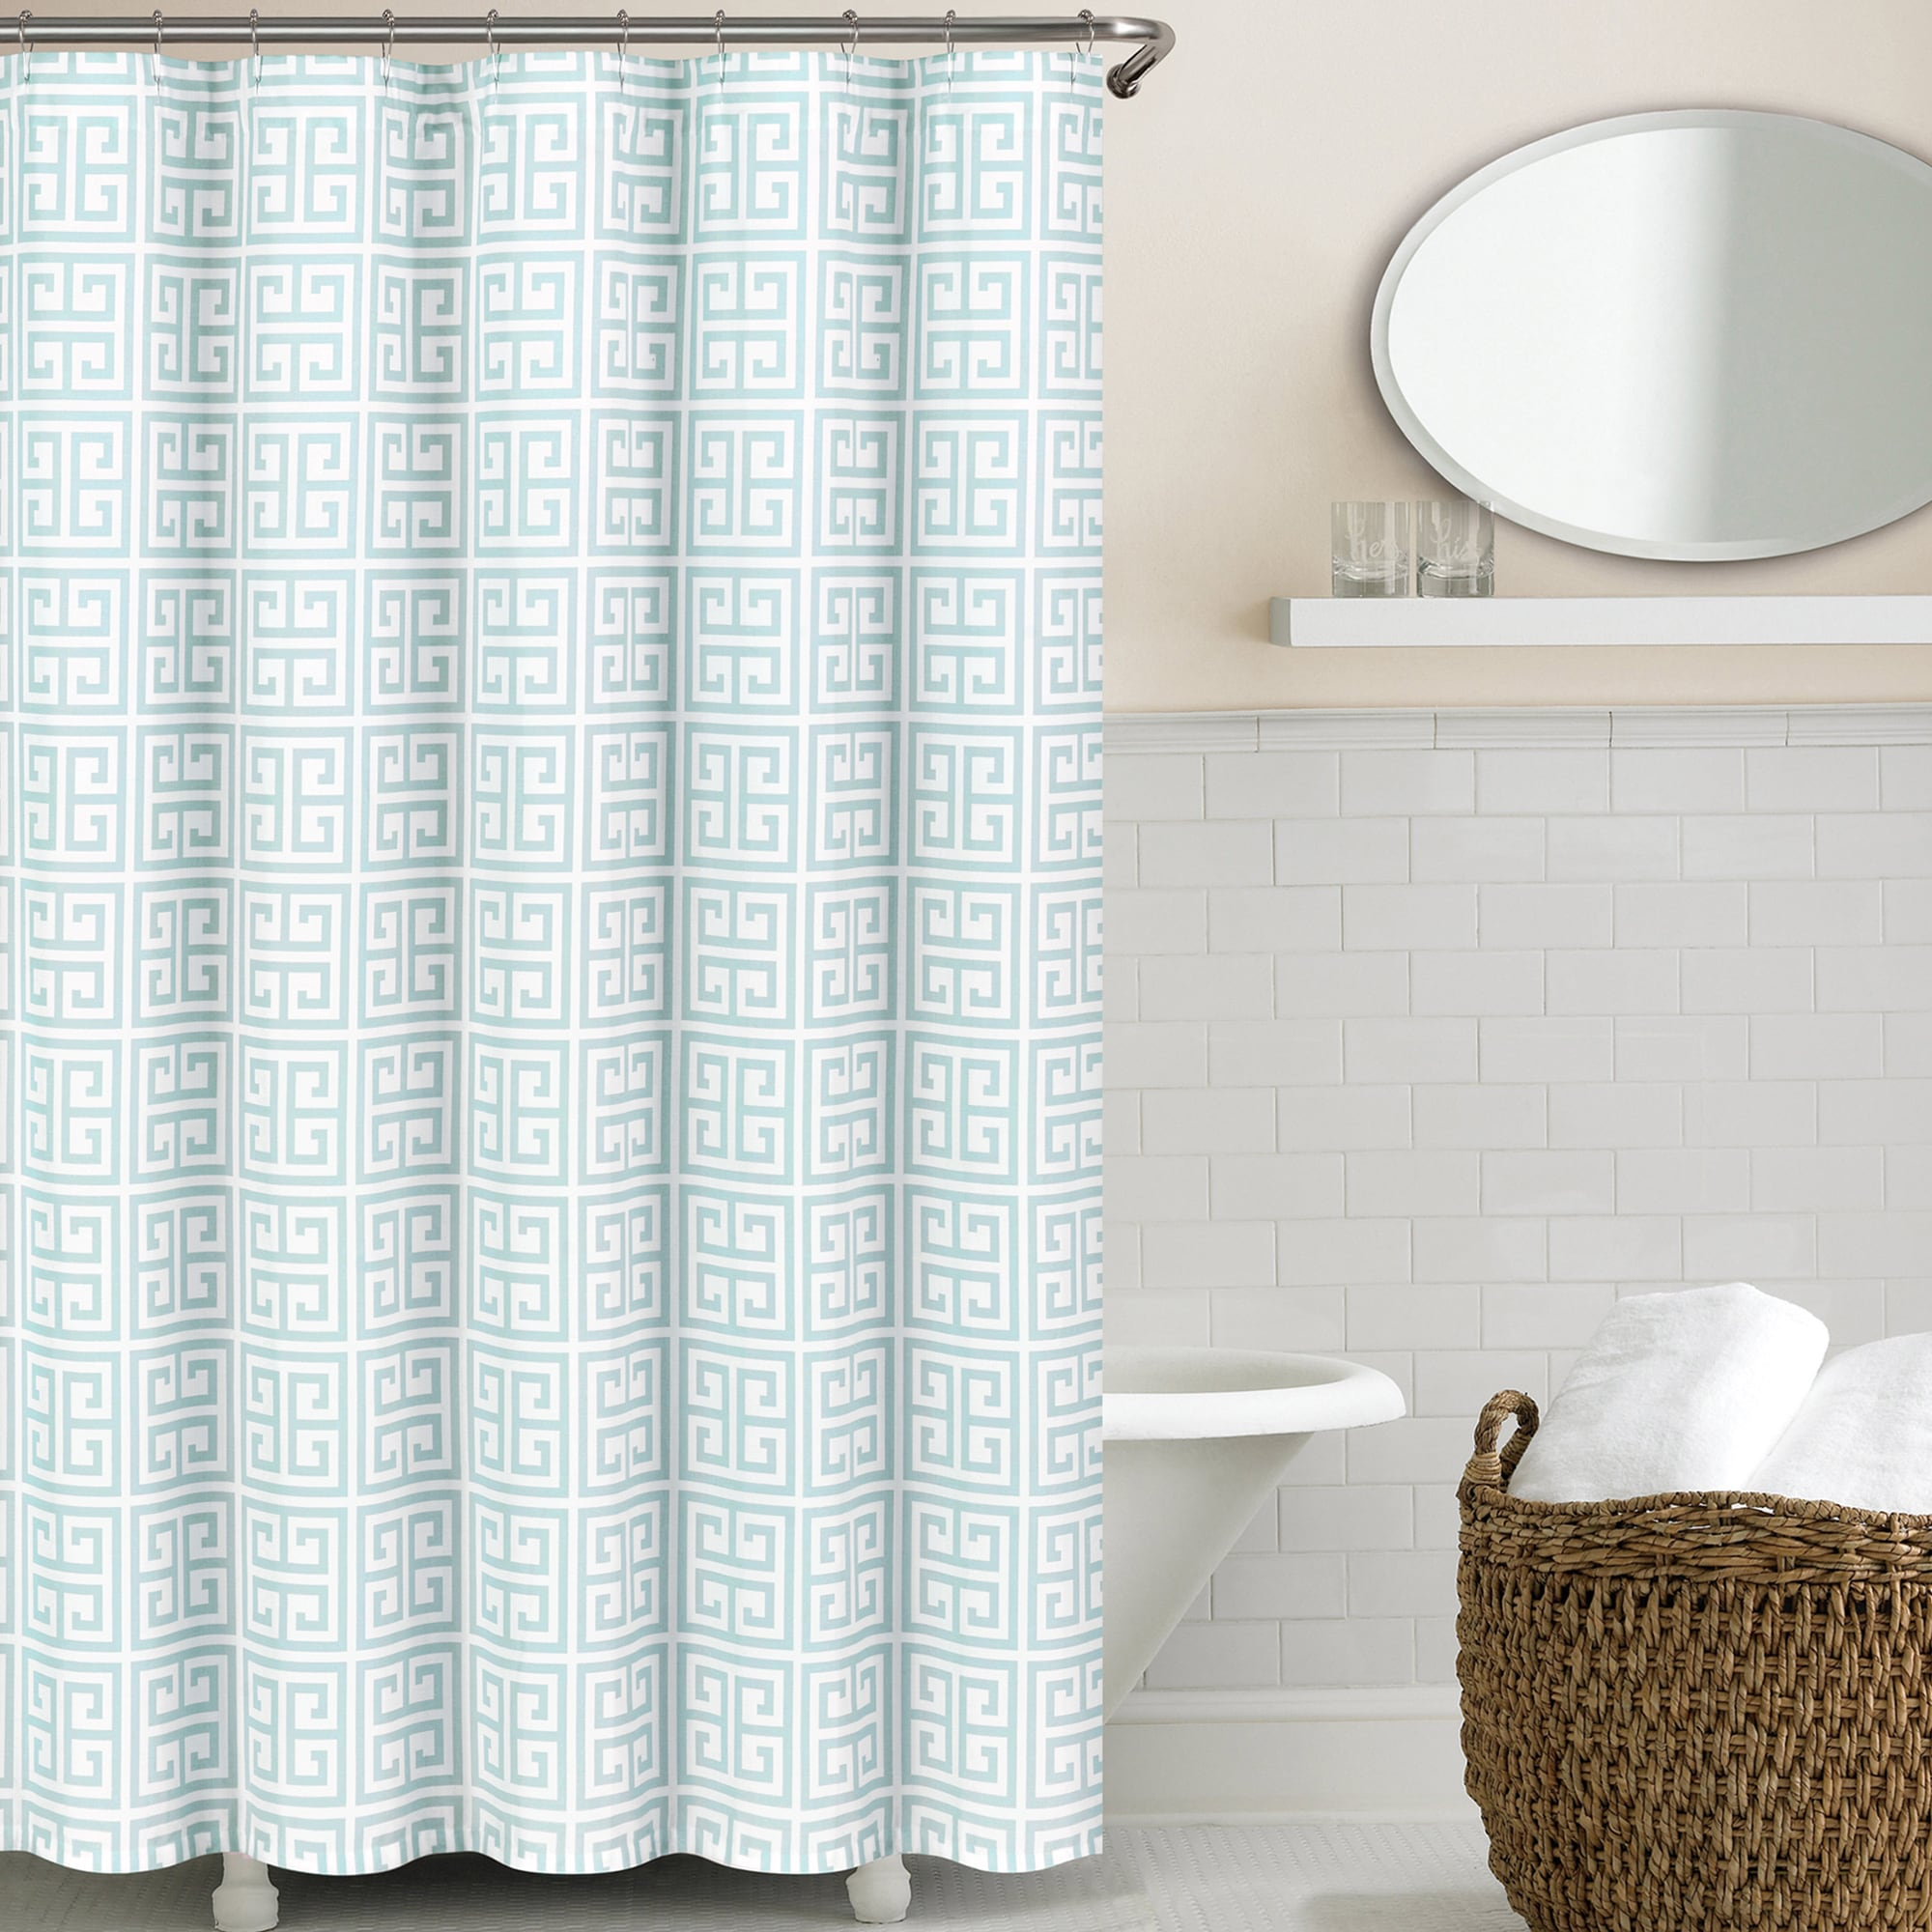 resistant shower picture water fabric of metro stripe inspirational ombre curtains rainbow curtain